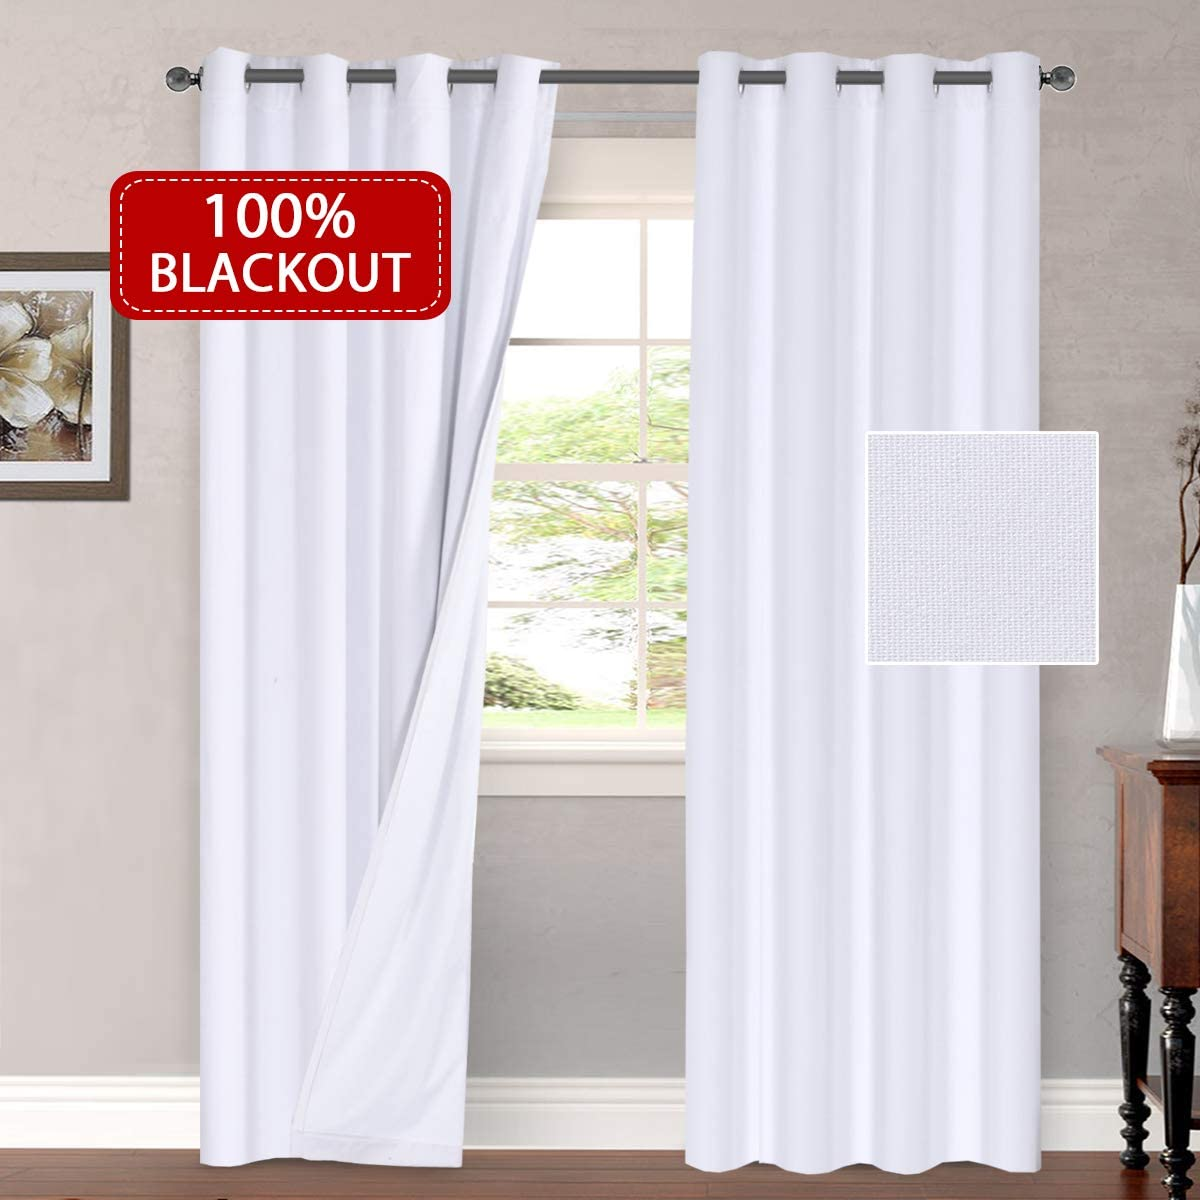 H.VERSAILTEX Curtains 100 Blackout Draperies Patio Waterproof Linen Look Blackout Curtains Bedroom Extra Long 108 Inches Grommets Window Curtain Panels White Color, 2 Panels